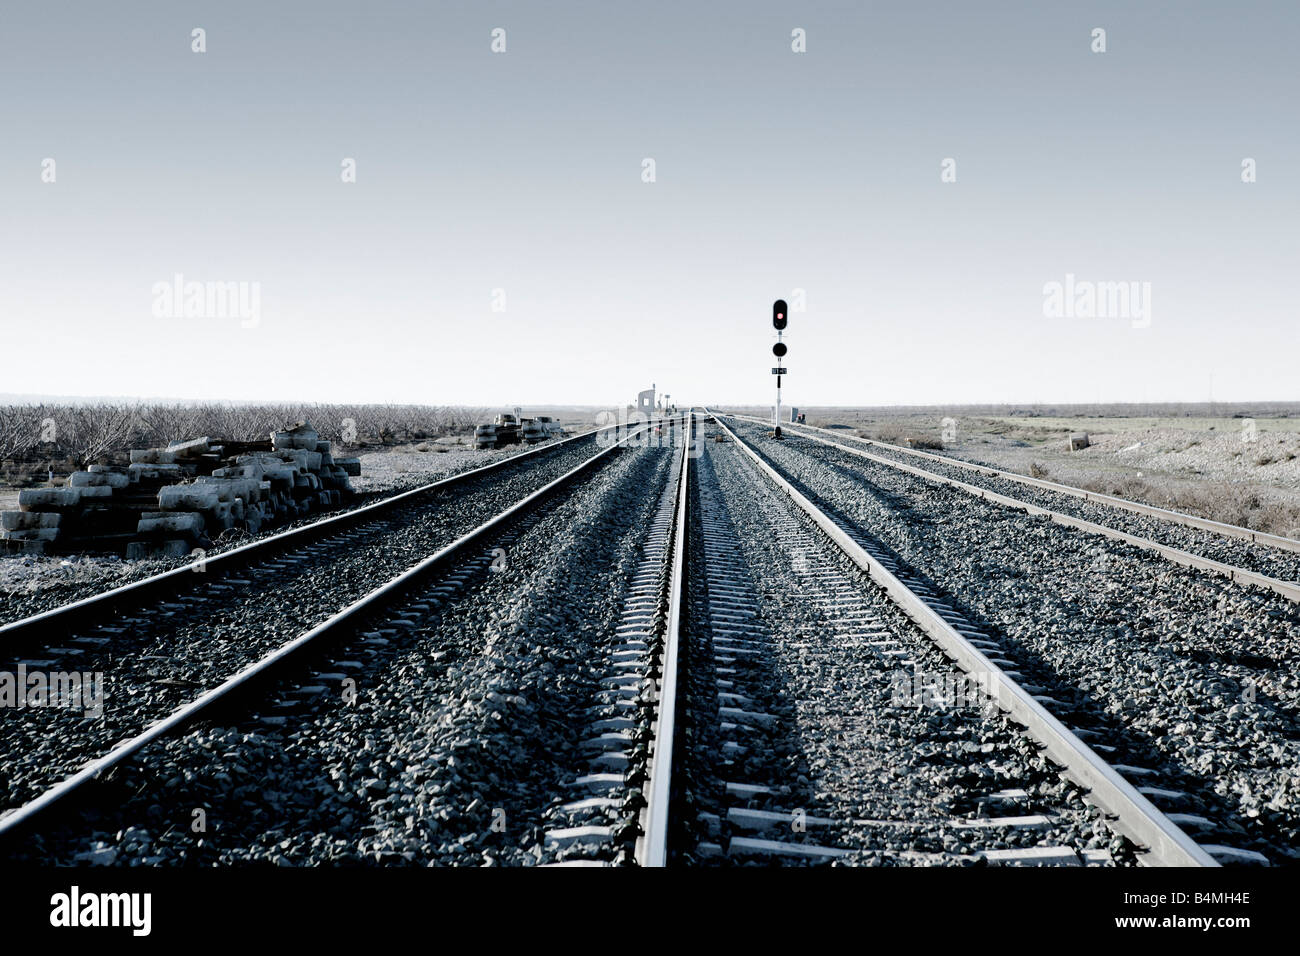 An empty railway track - Stock Image